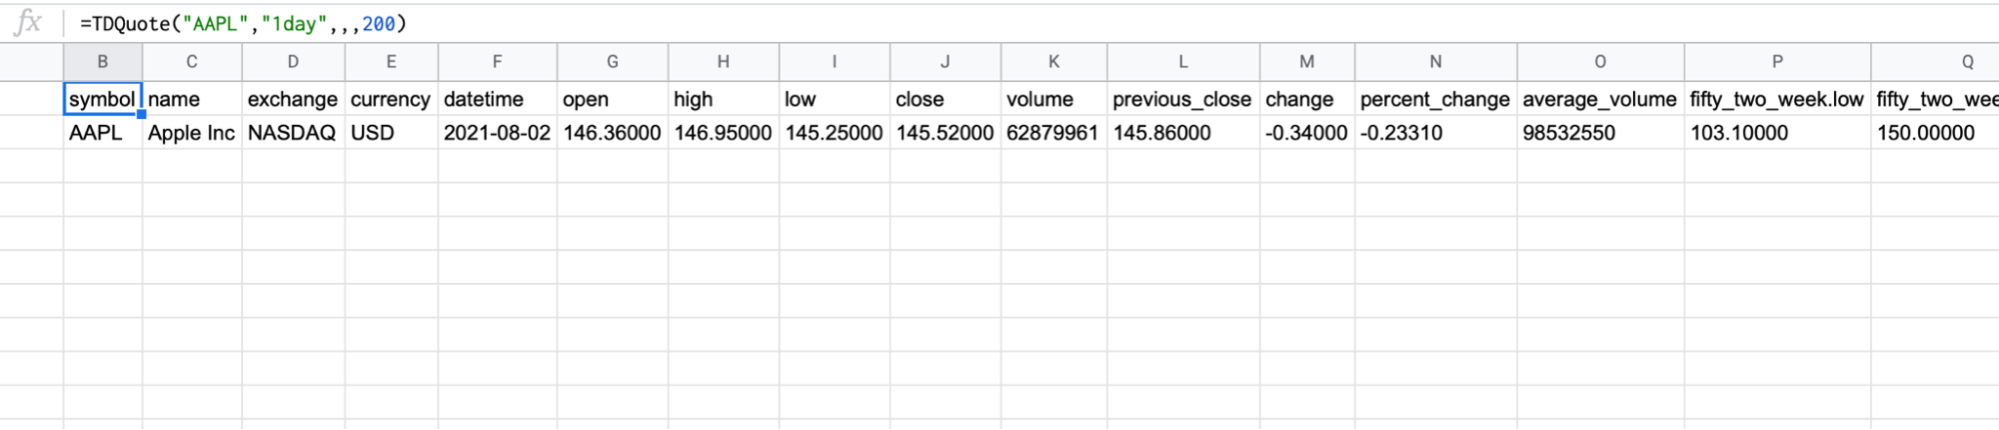 Quote information for AAPL stock with 200 days average volume